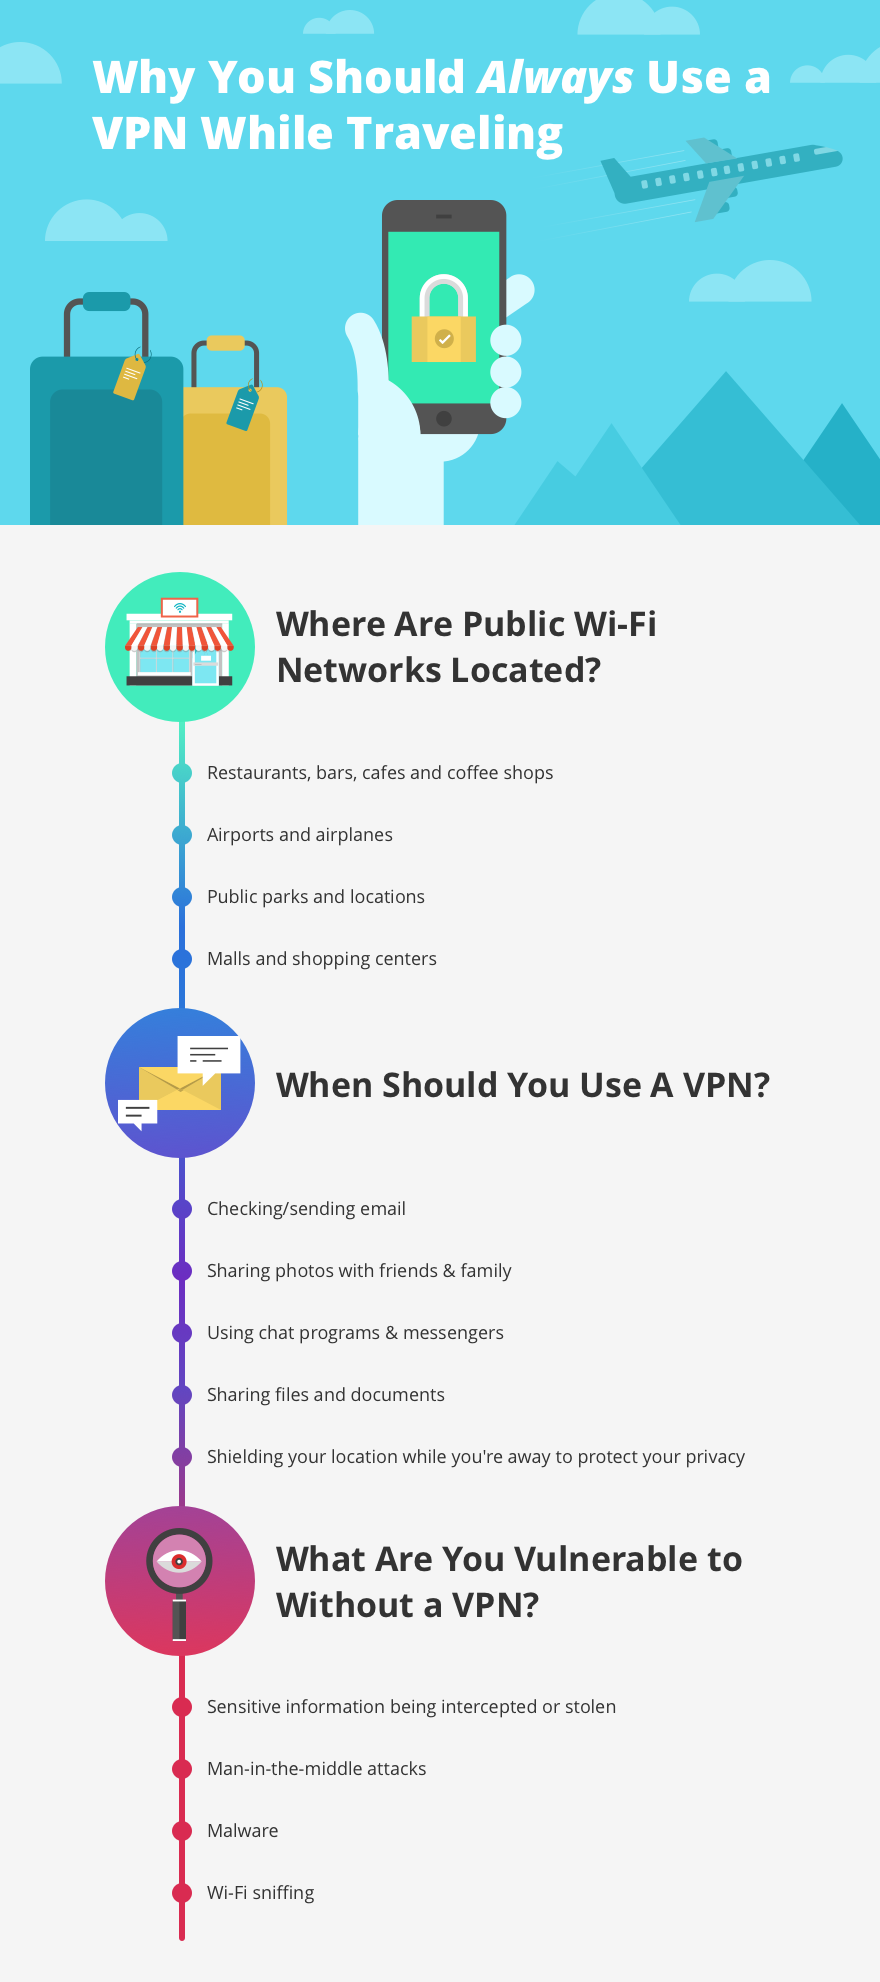 why a vpn is essential when traveling and using wifi